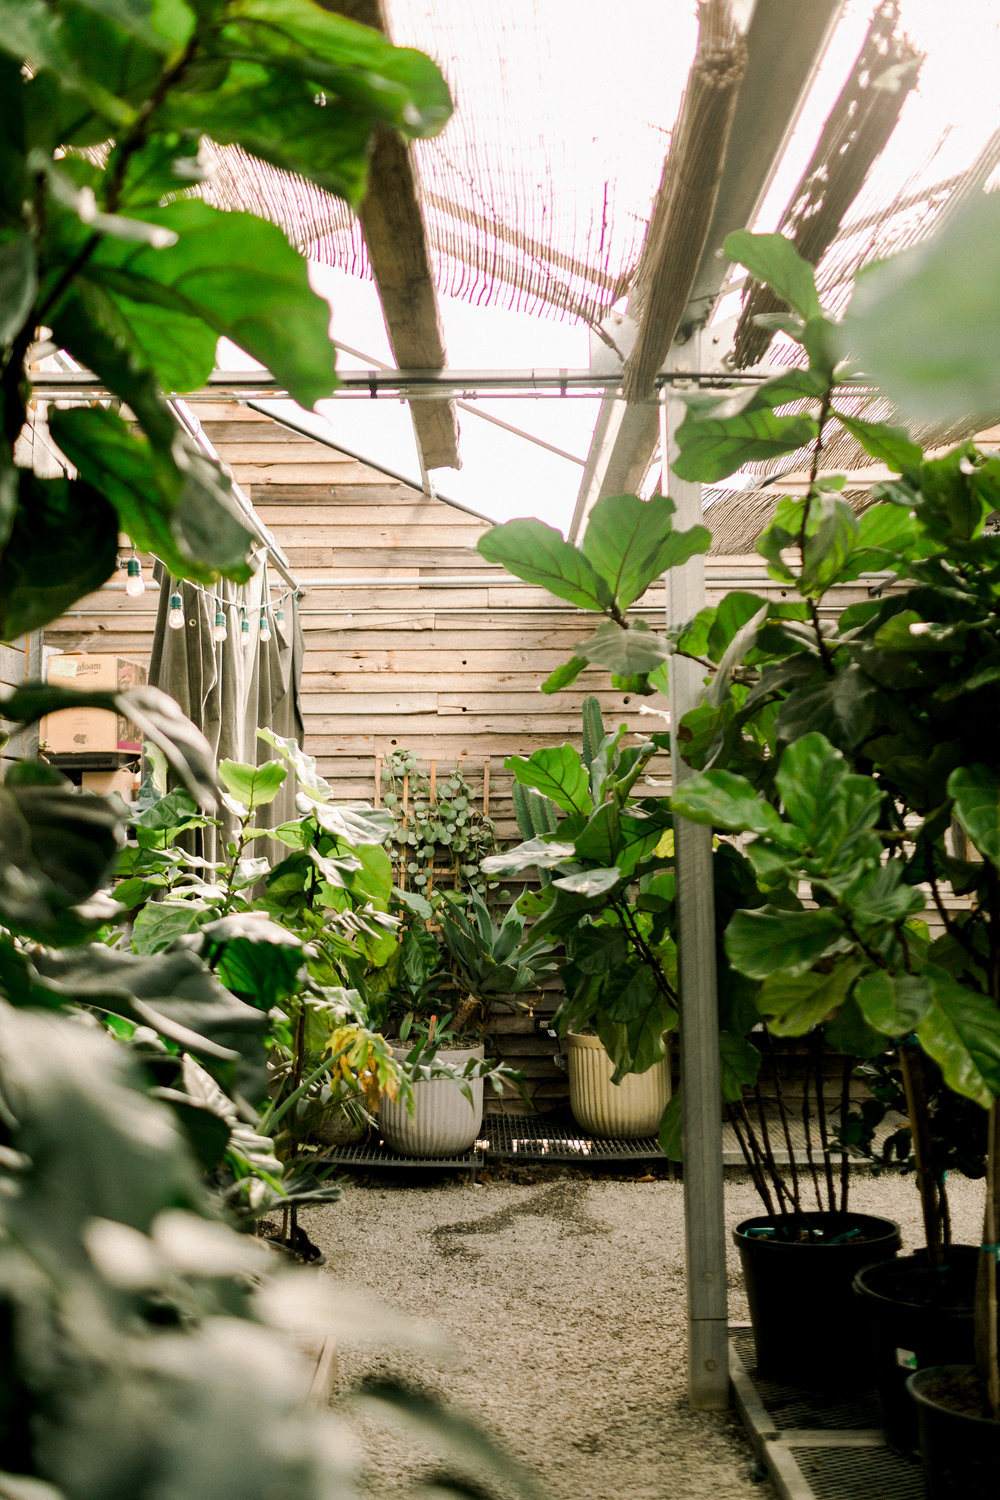 Terrain-Cafe-Greenhouse-Wedding-Venue-Philadelphia-Mary-Kate-Steele-Photography